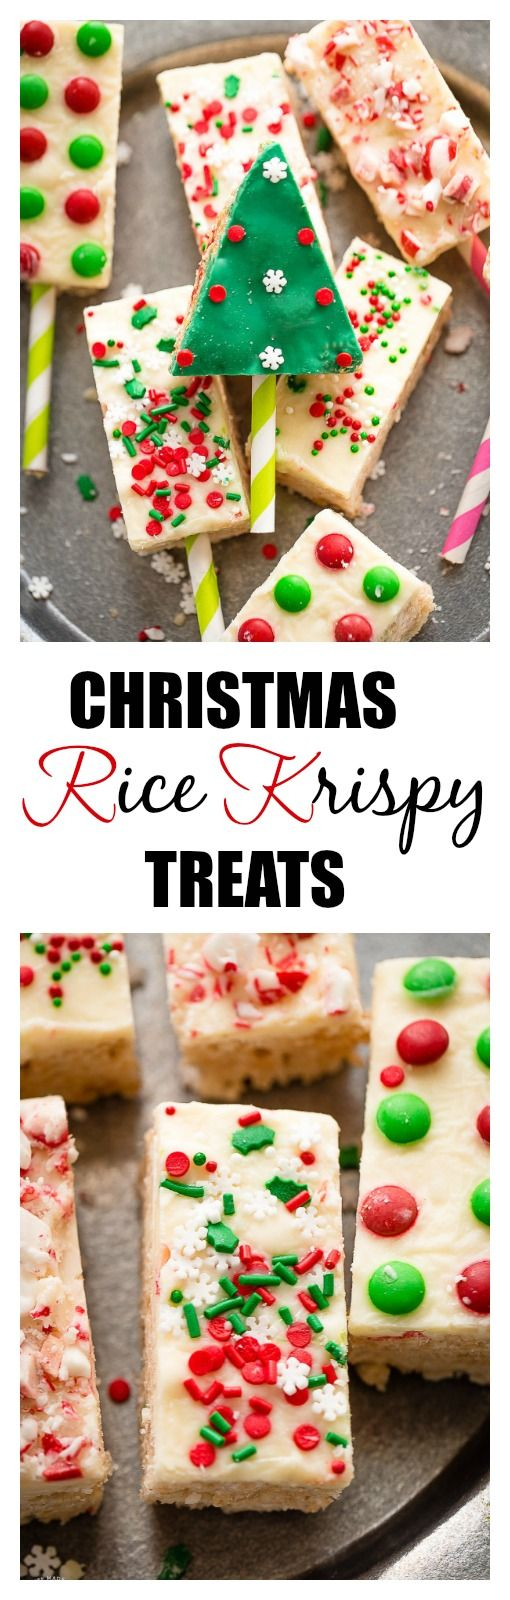 Christmas Rice Krispy Treats with White Chocolate and festive sprinkles are perfect for the holidays!